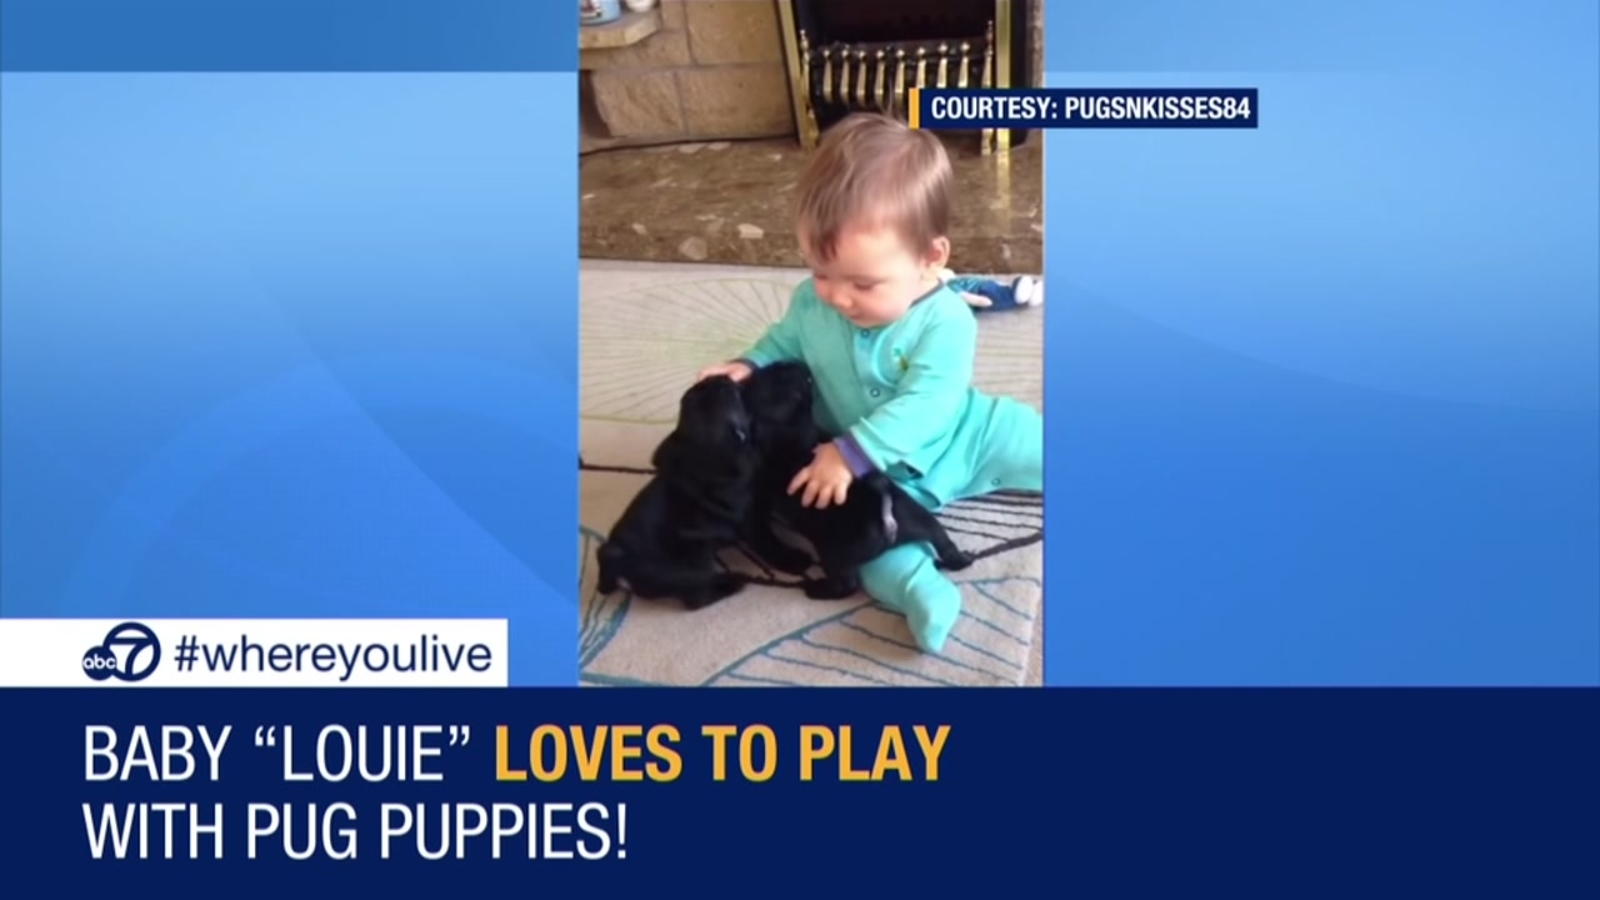 Know & Tell: Baby loves playing with pug puppies